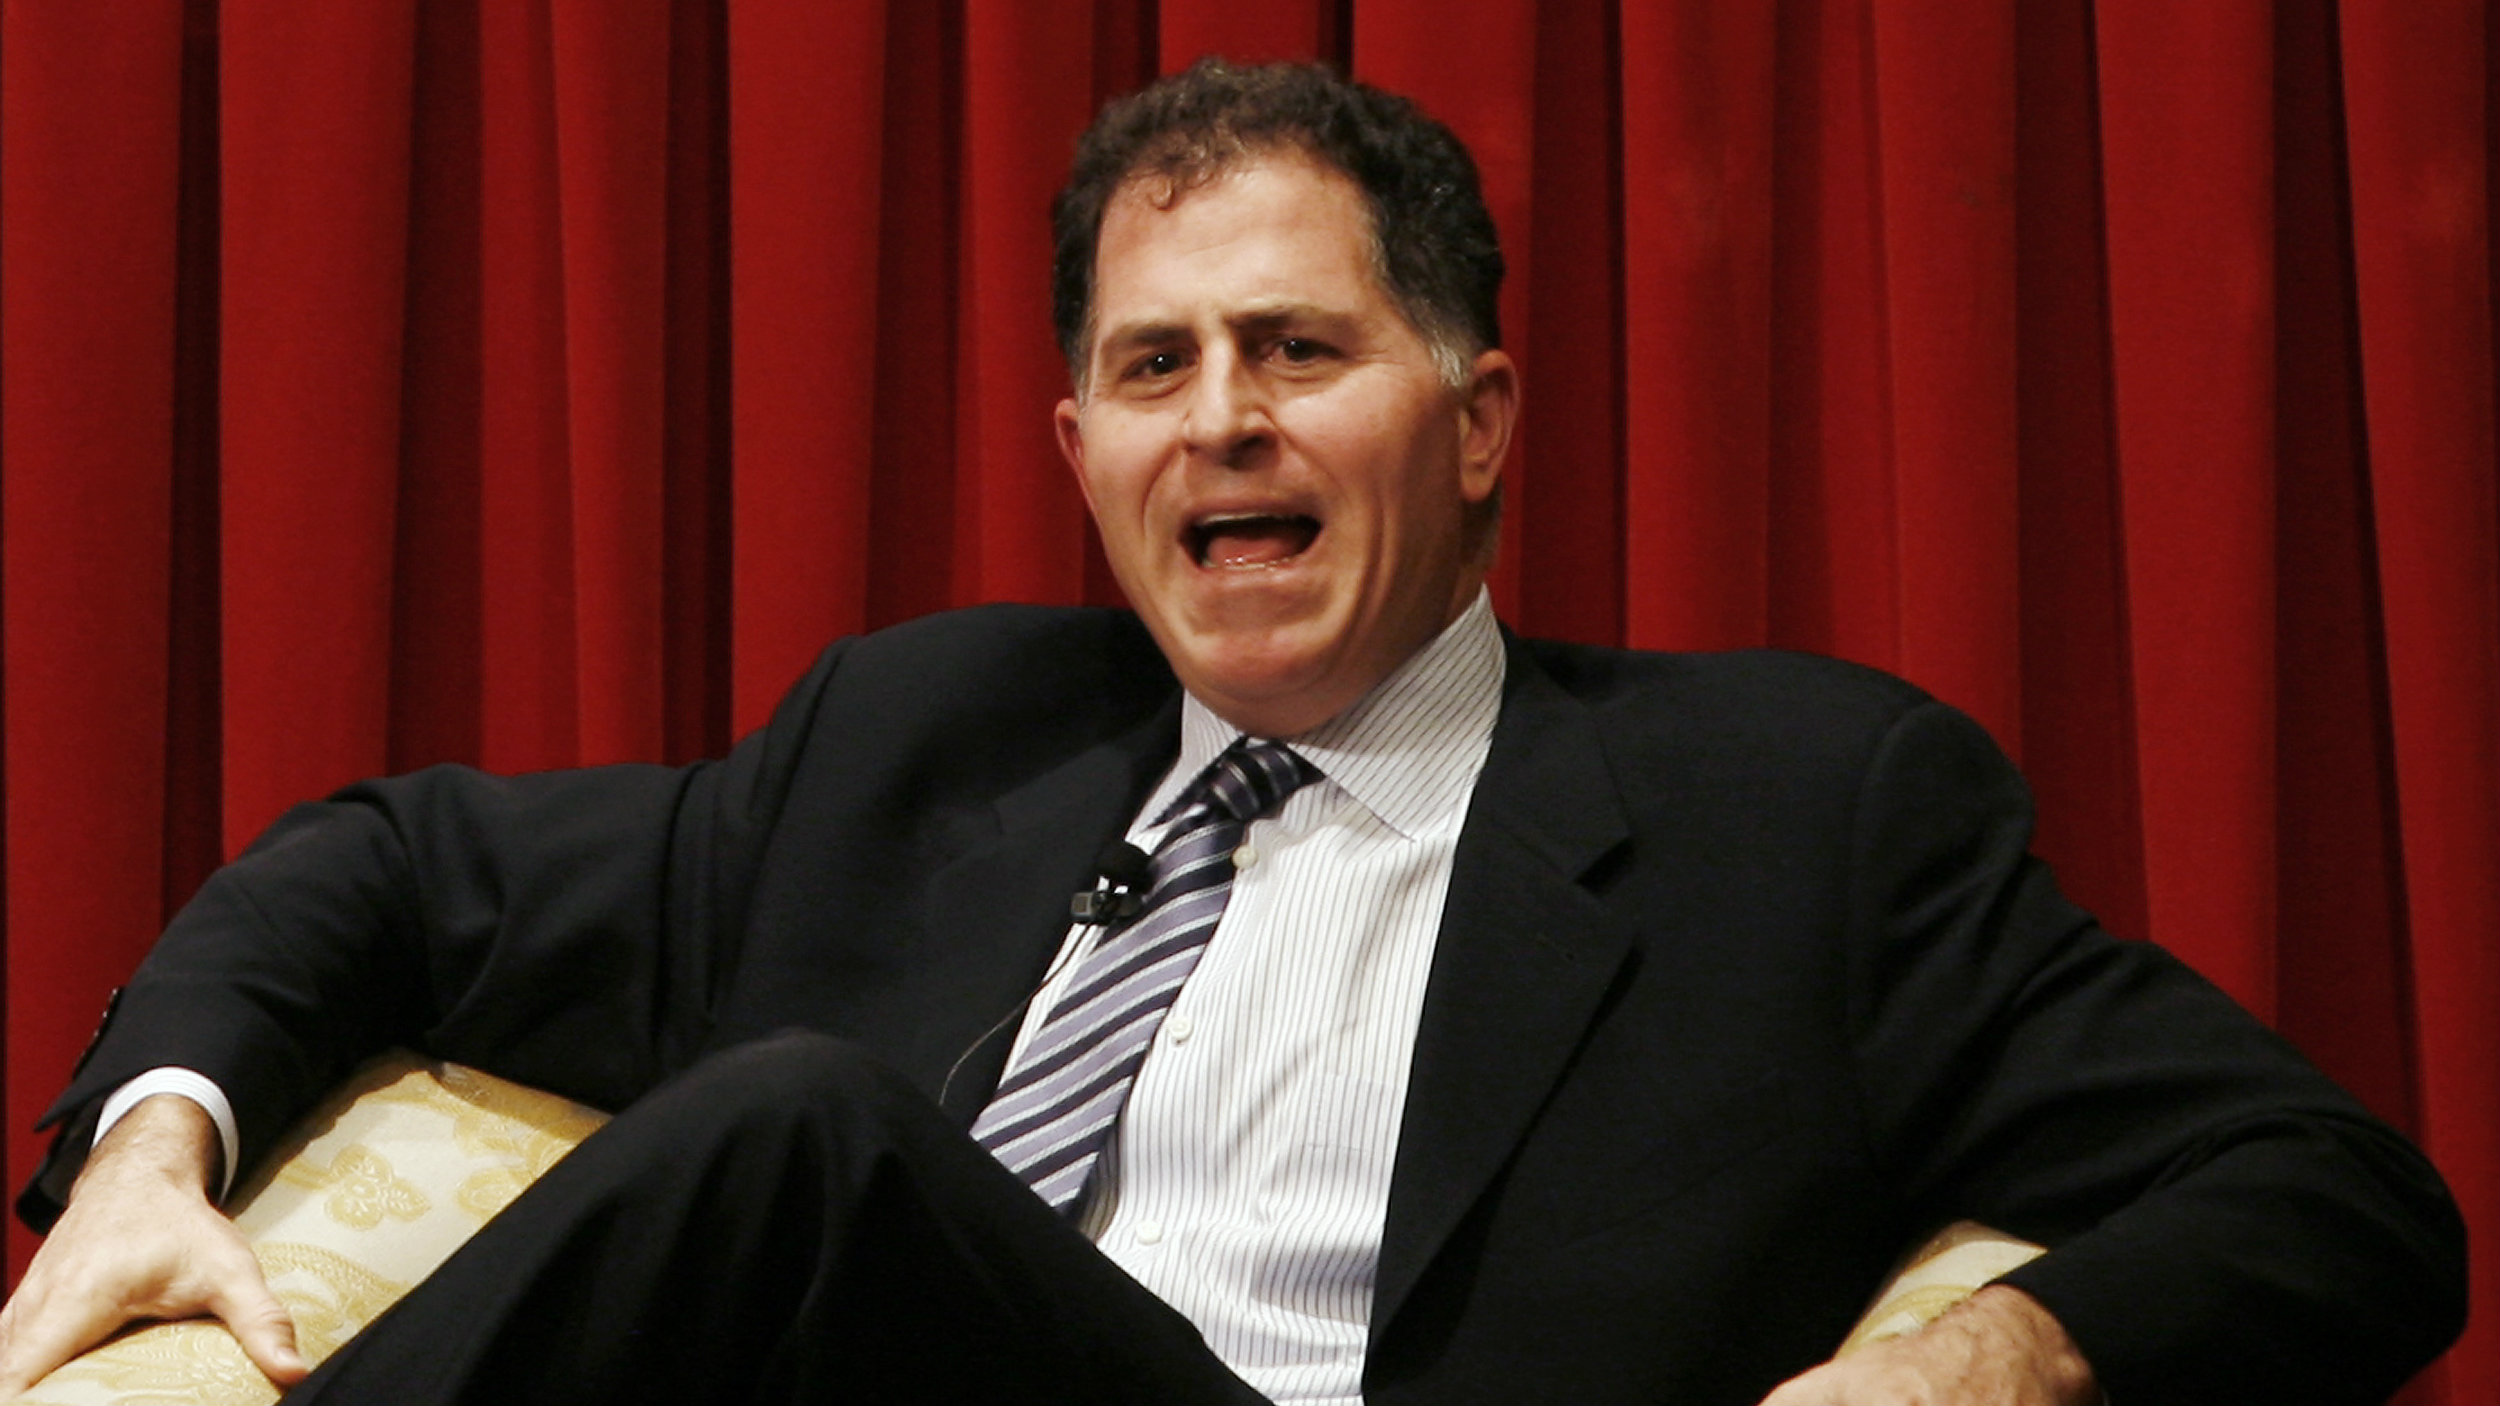 Michael Dell, Chairman and Chief Executive Officer of Dell.